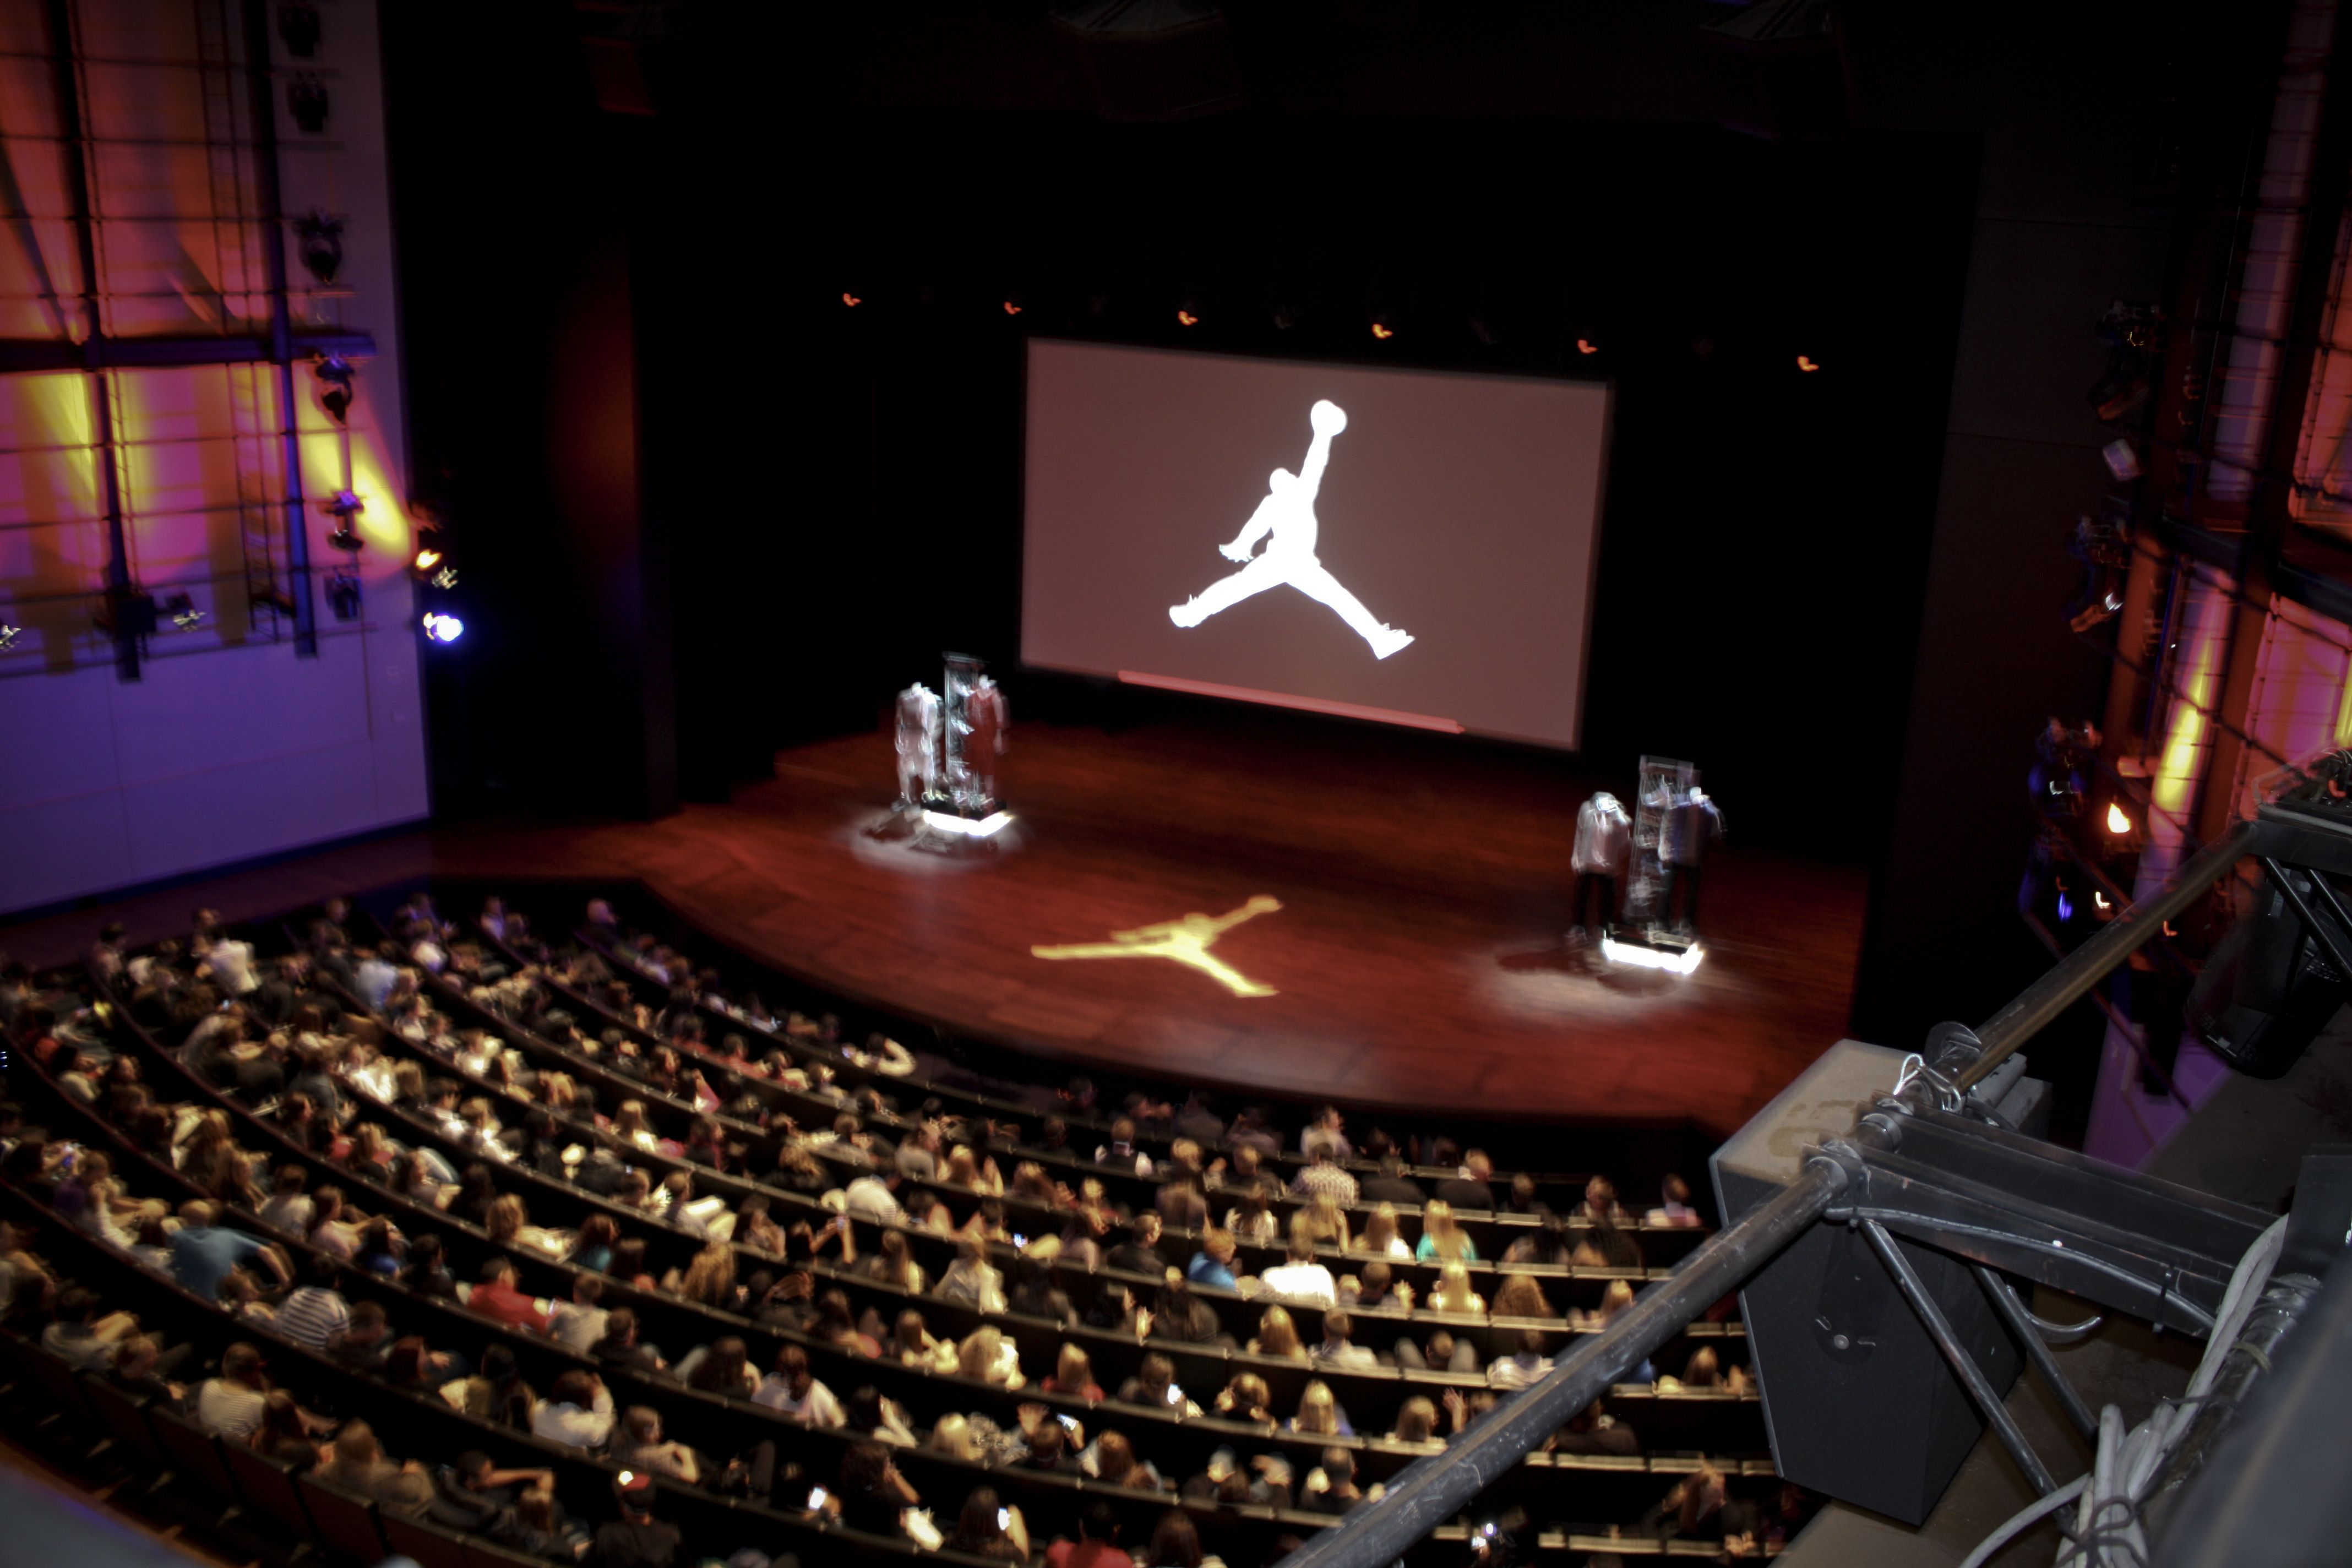 ab80e86db Students pack the auditorium in the Tiger Woods Center for our 4th Annual  Jordan Brand Experience event.